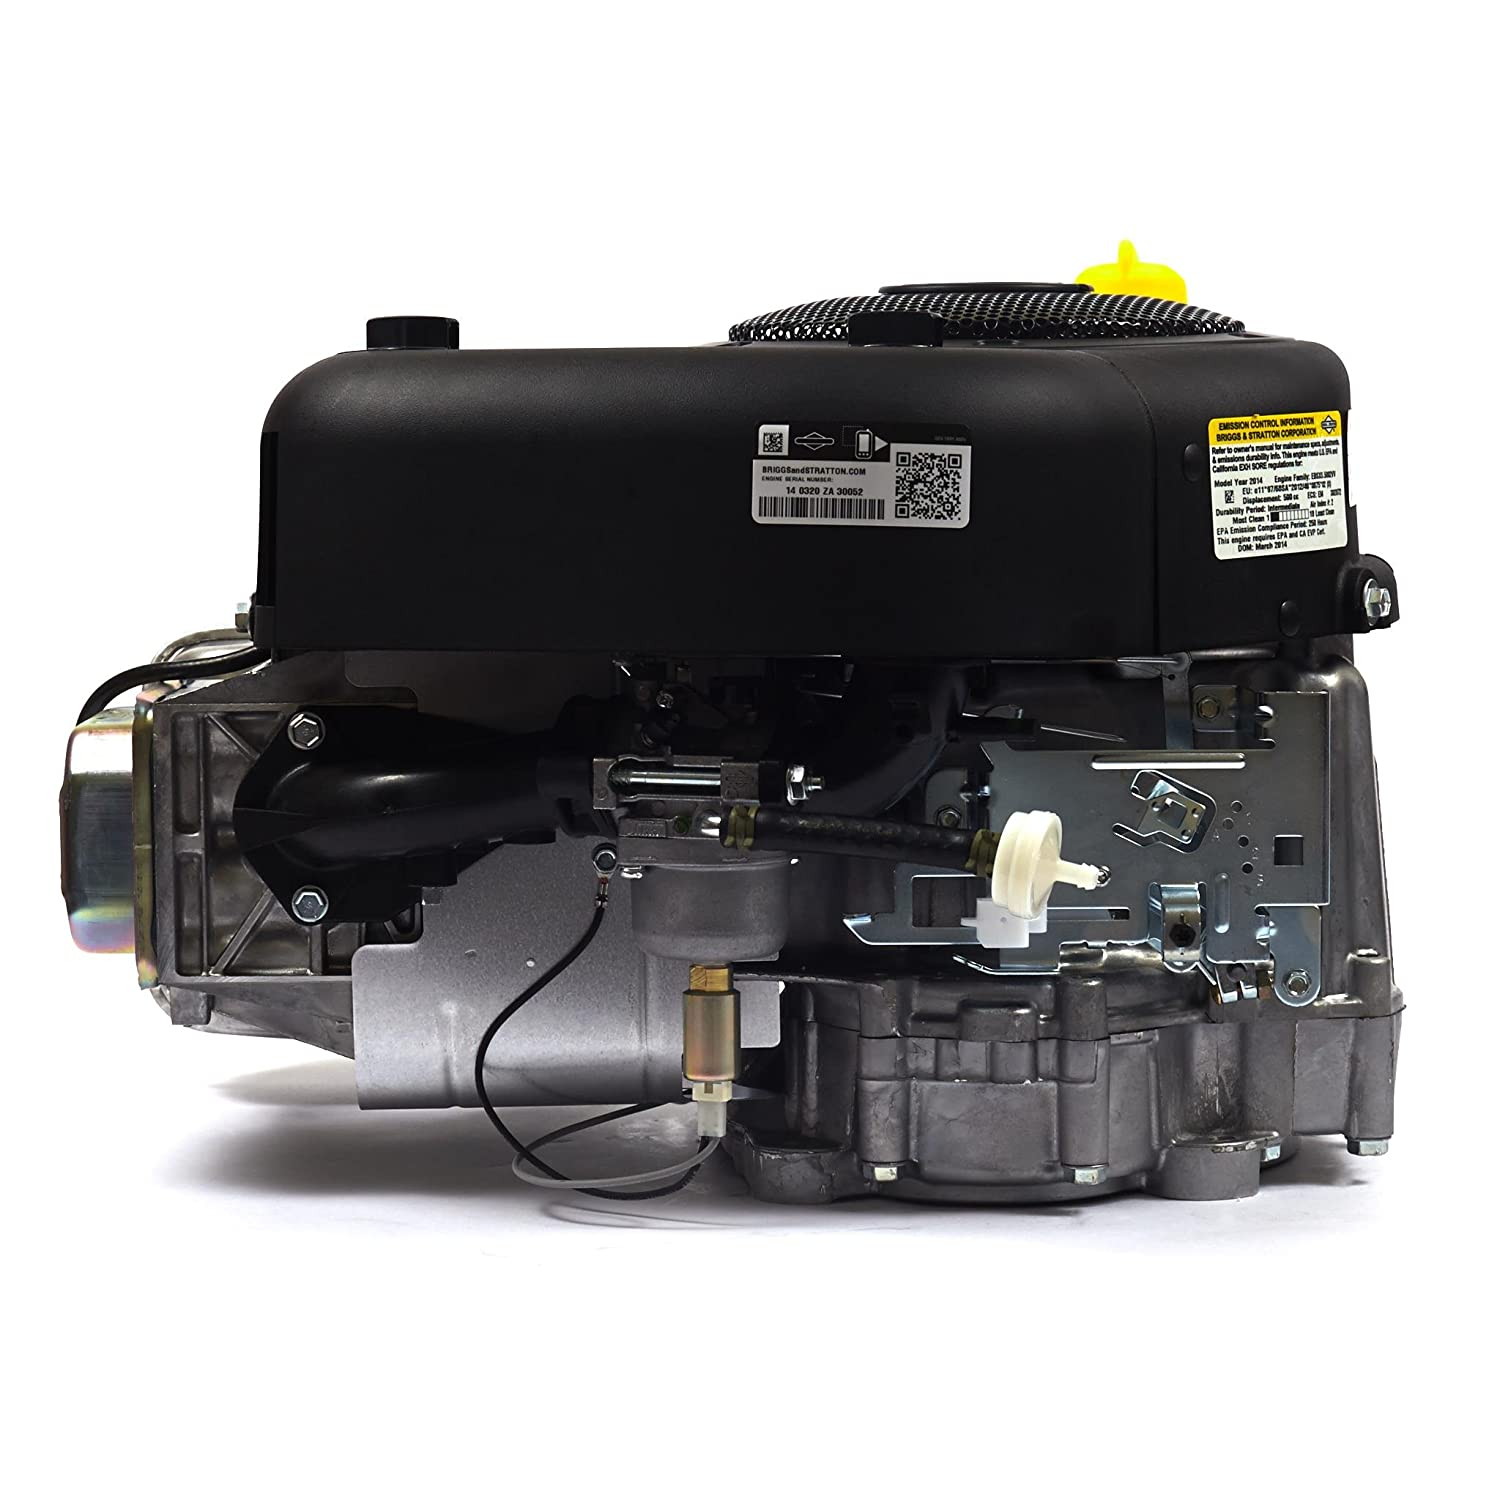 Briggs Stratton 31r907 0007 G1 500cc 175 Gross Hp Wiring Harness Iding Machine For Sale Engine With 1 Inch By 3 5 32 Length Crankshaft Tapped 7 16 20 Garden Outdoor